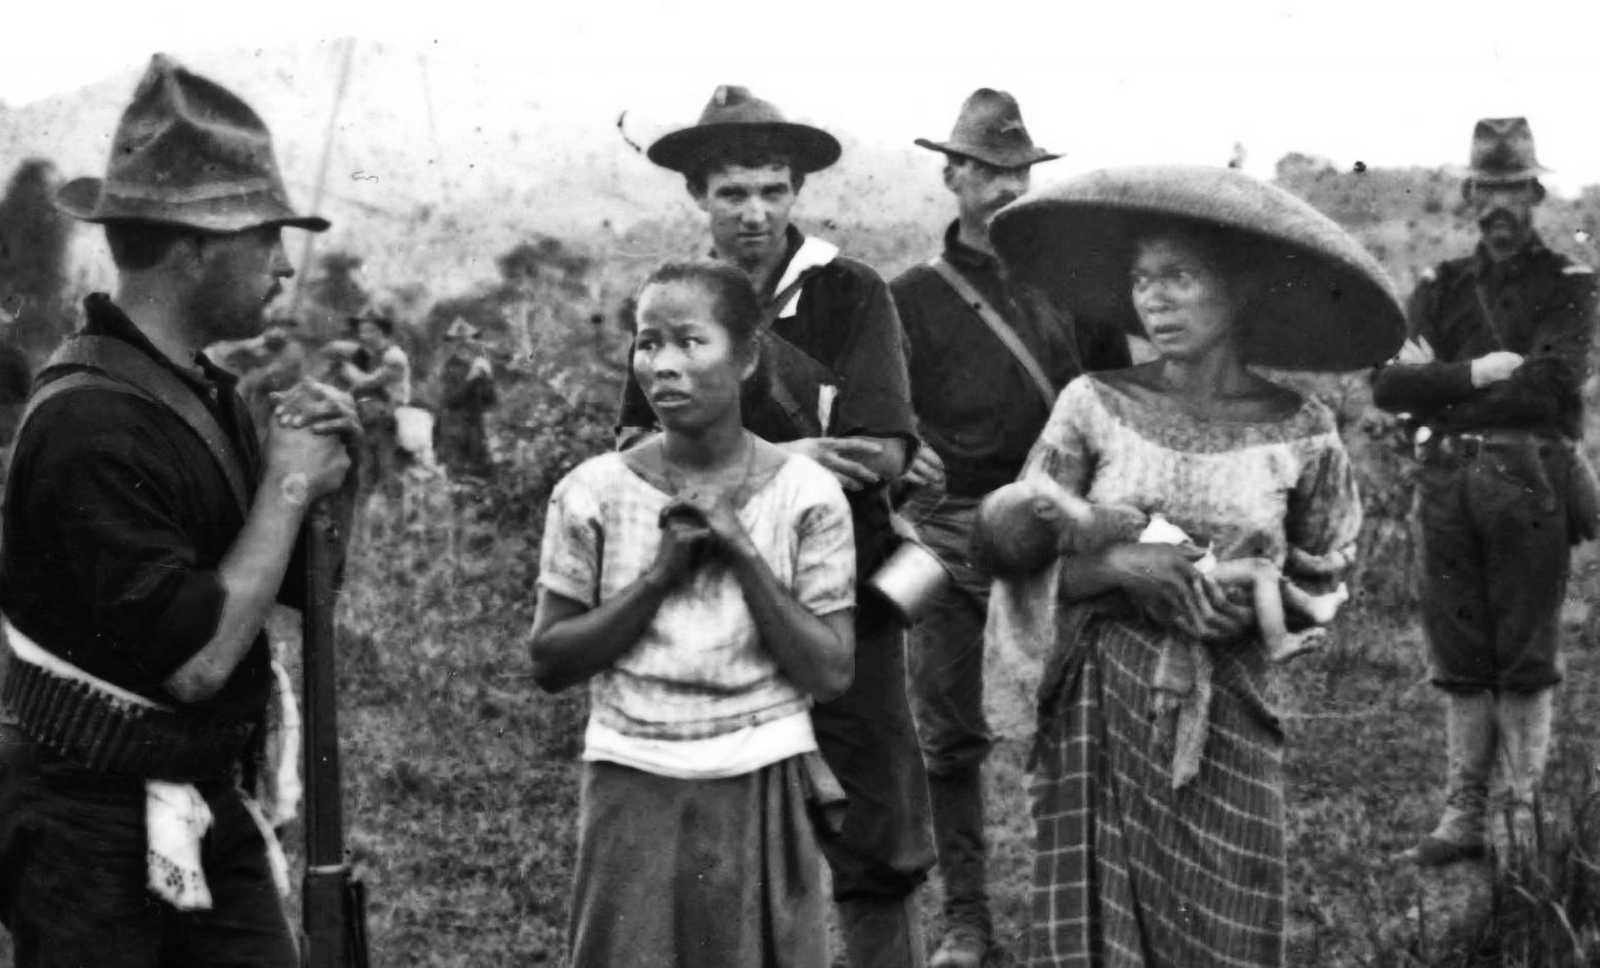 Black and white photo of Filipino women in a field (one holding a child) surrounded by American soldiers with rifles